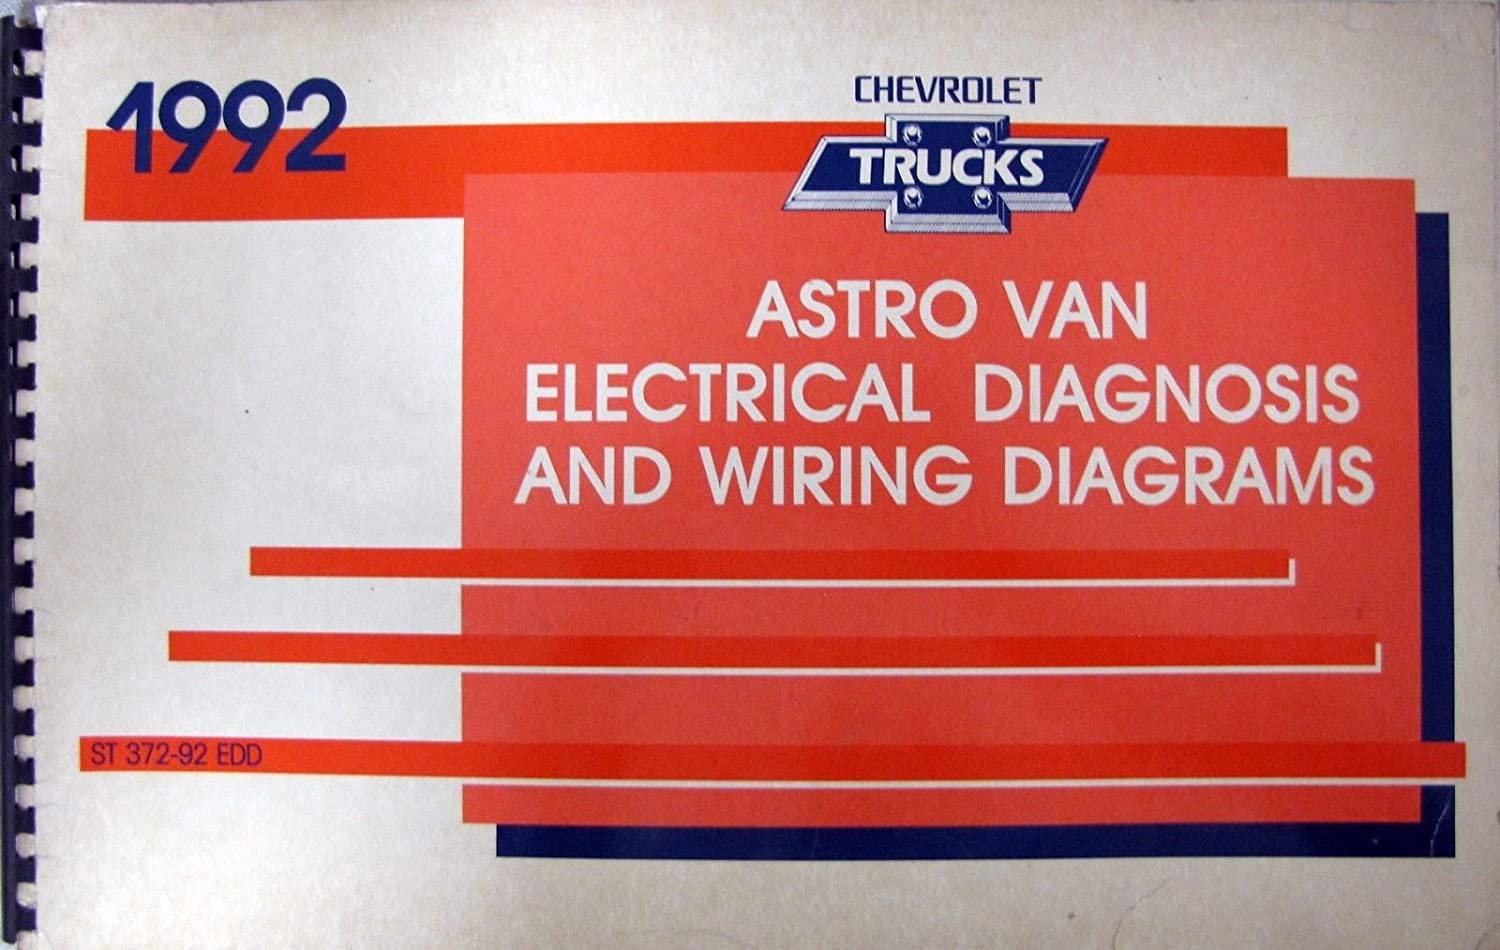 Amazon.com : 1992 Chevrolet Astro Van Electrical Diagnosis & Wiring Diagrams  : Everything Else